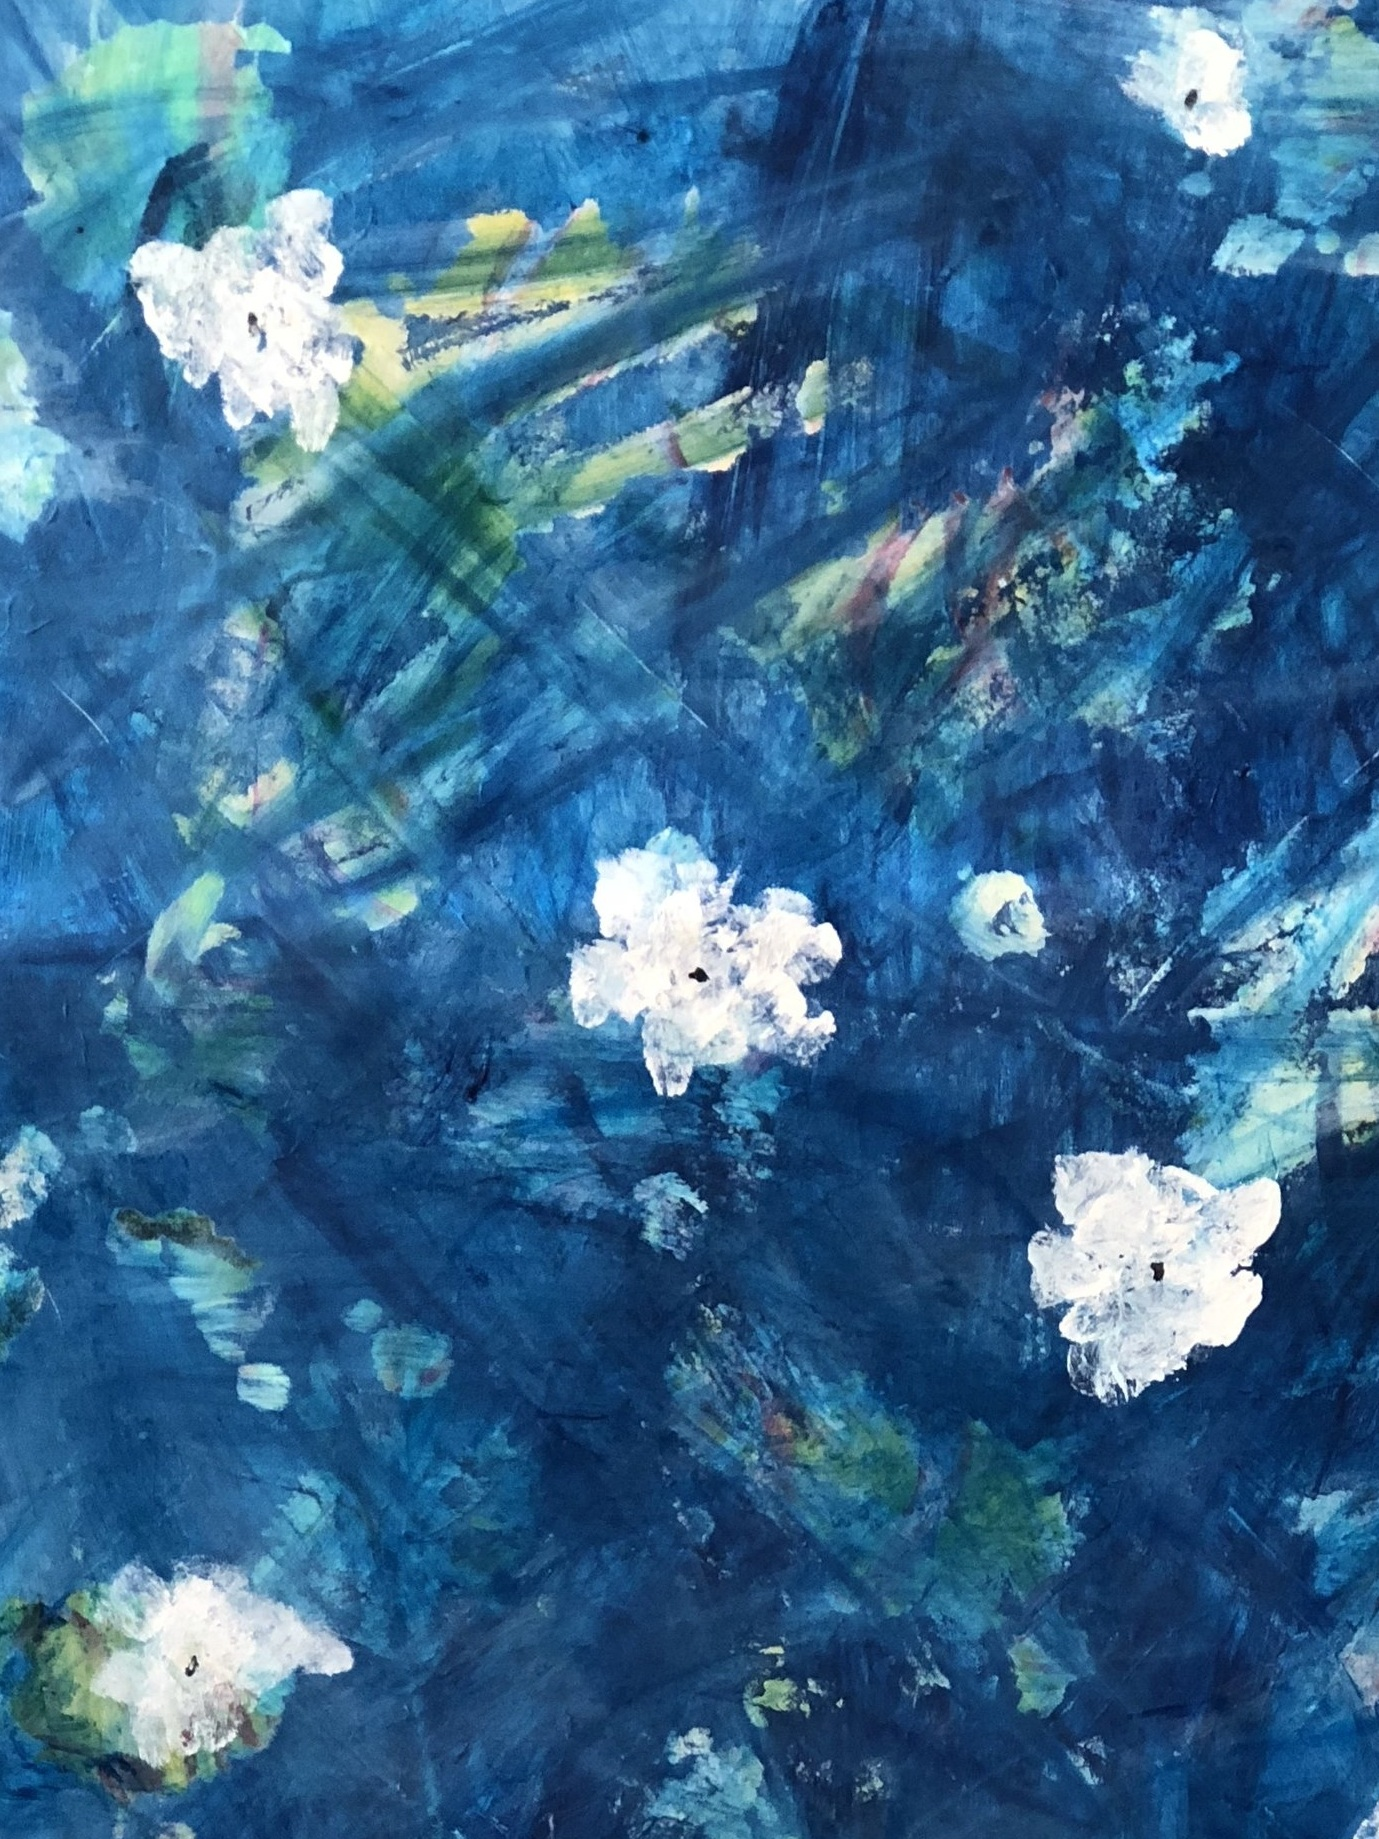 water+lily+30x40+acrylic+on+canvas.jpg